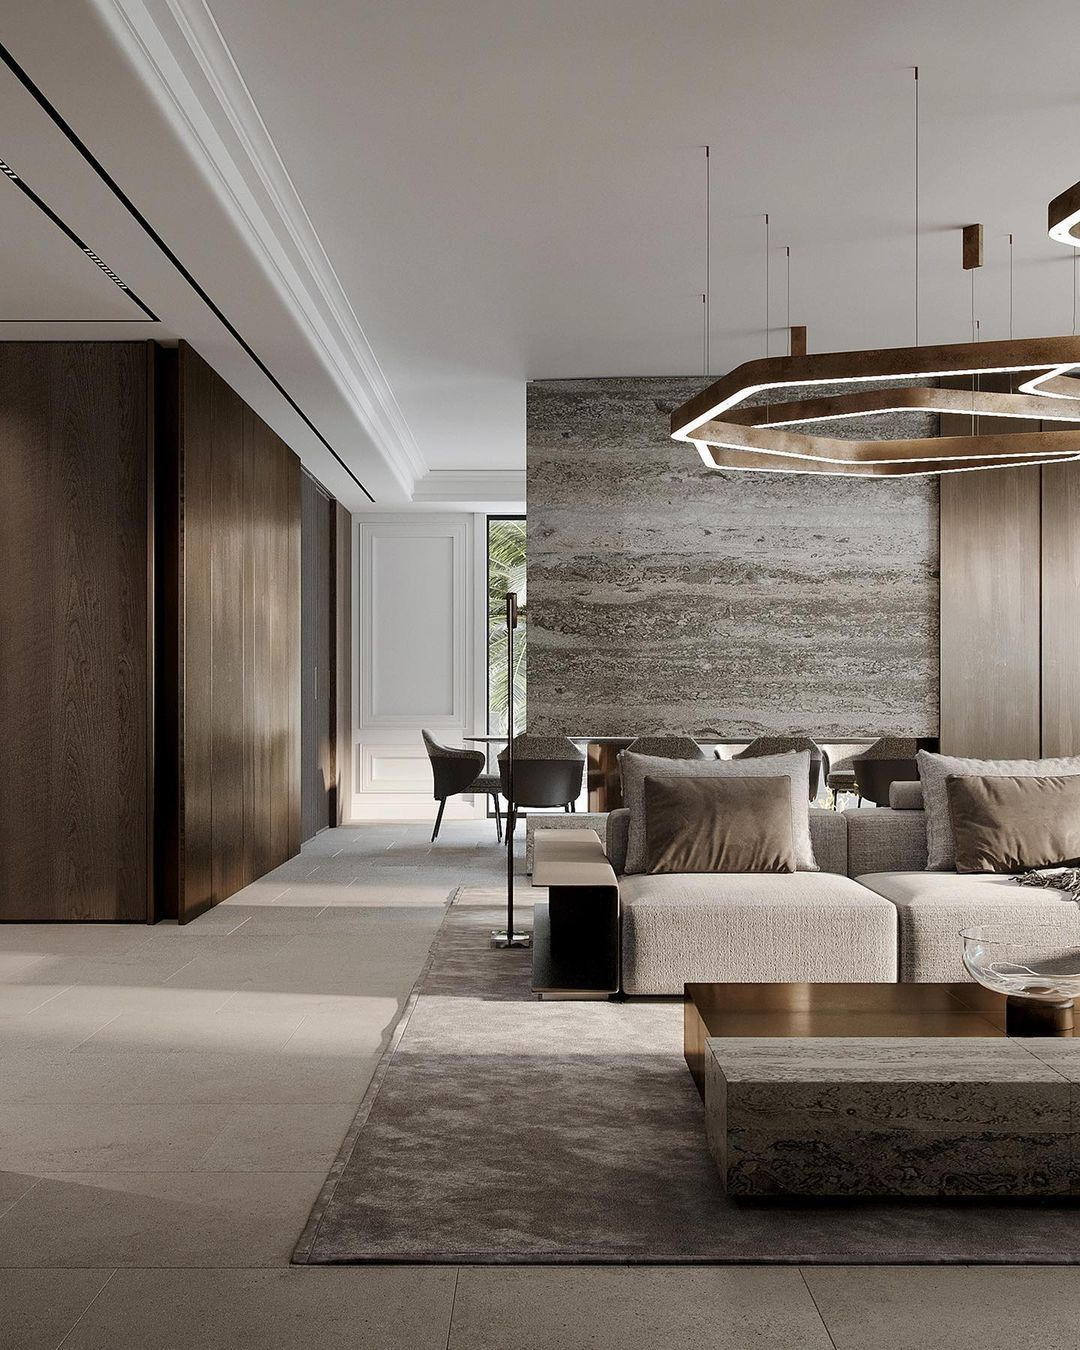 Interior Design Trends 2019 Discover The Top 10 Interior Design And Decor Trends Of 2019 In T Luxury Living Room Design Luxury Living Room Stylish Living Room